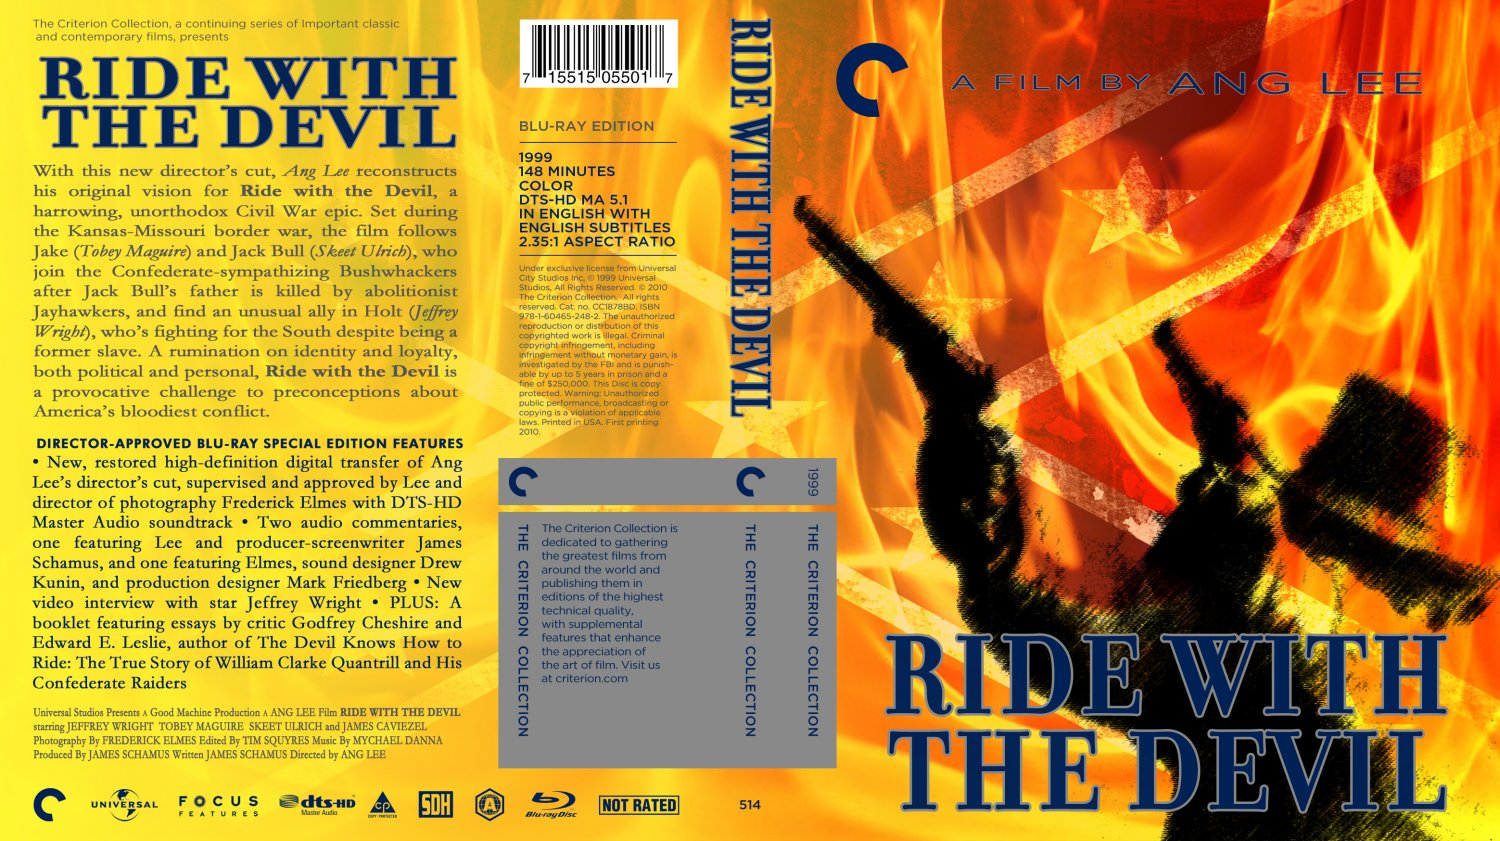 ride with the devil movie bluray custom covers